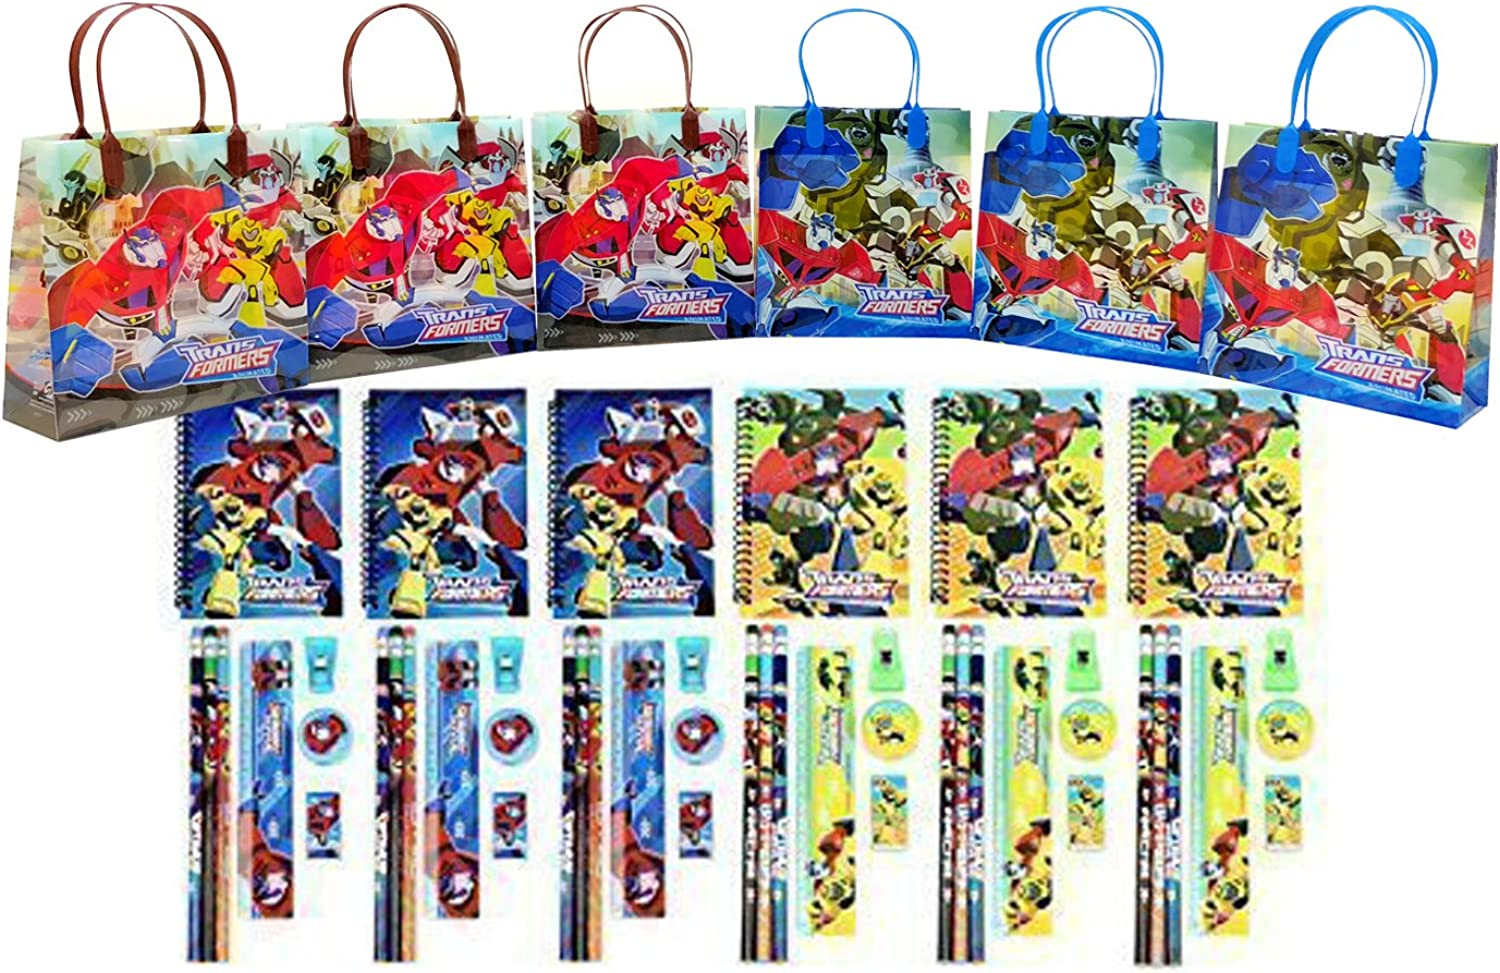 punto de venta de la marca Transformers Party Favor Stationery Set Set Set - (54 Pcs) by GoodyPlus  nueva marca